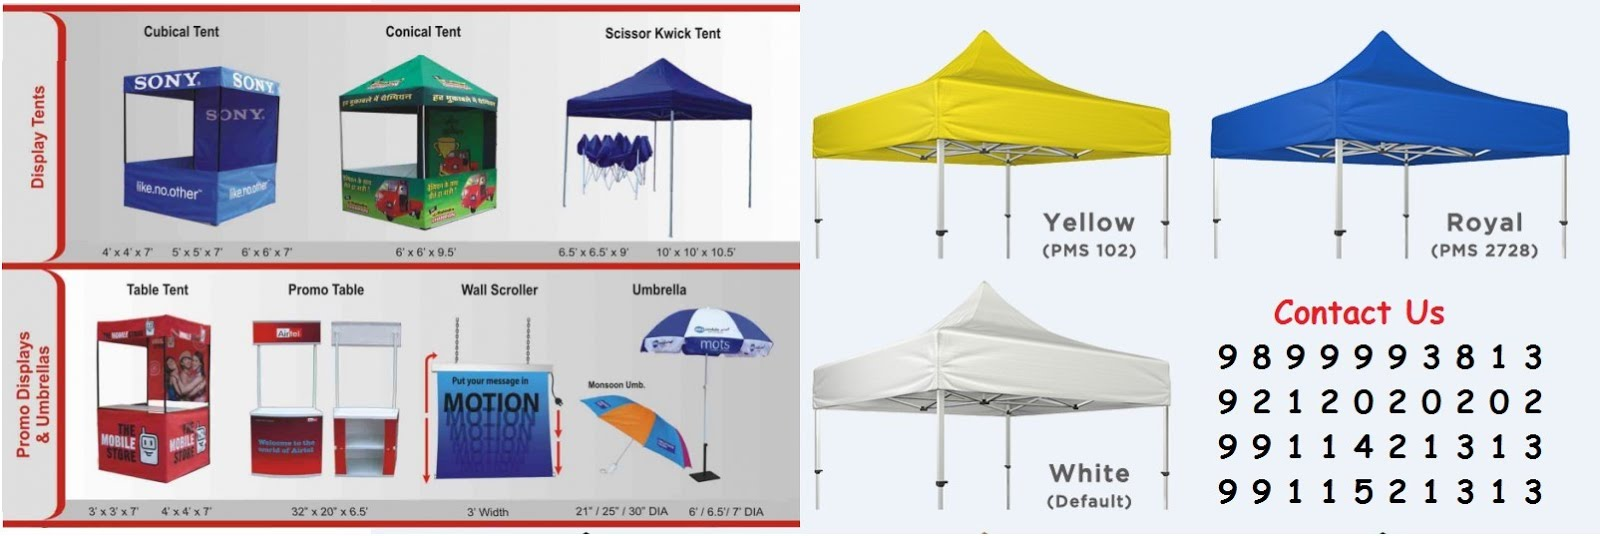 Manufacturers of Display Canopy Tents in New Delhi Supply All Over India  sc 1 th 130 & Marketing Tents for Sale in Hyderabad Advertising Tent ...